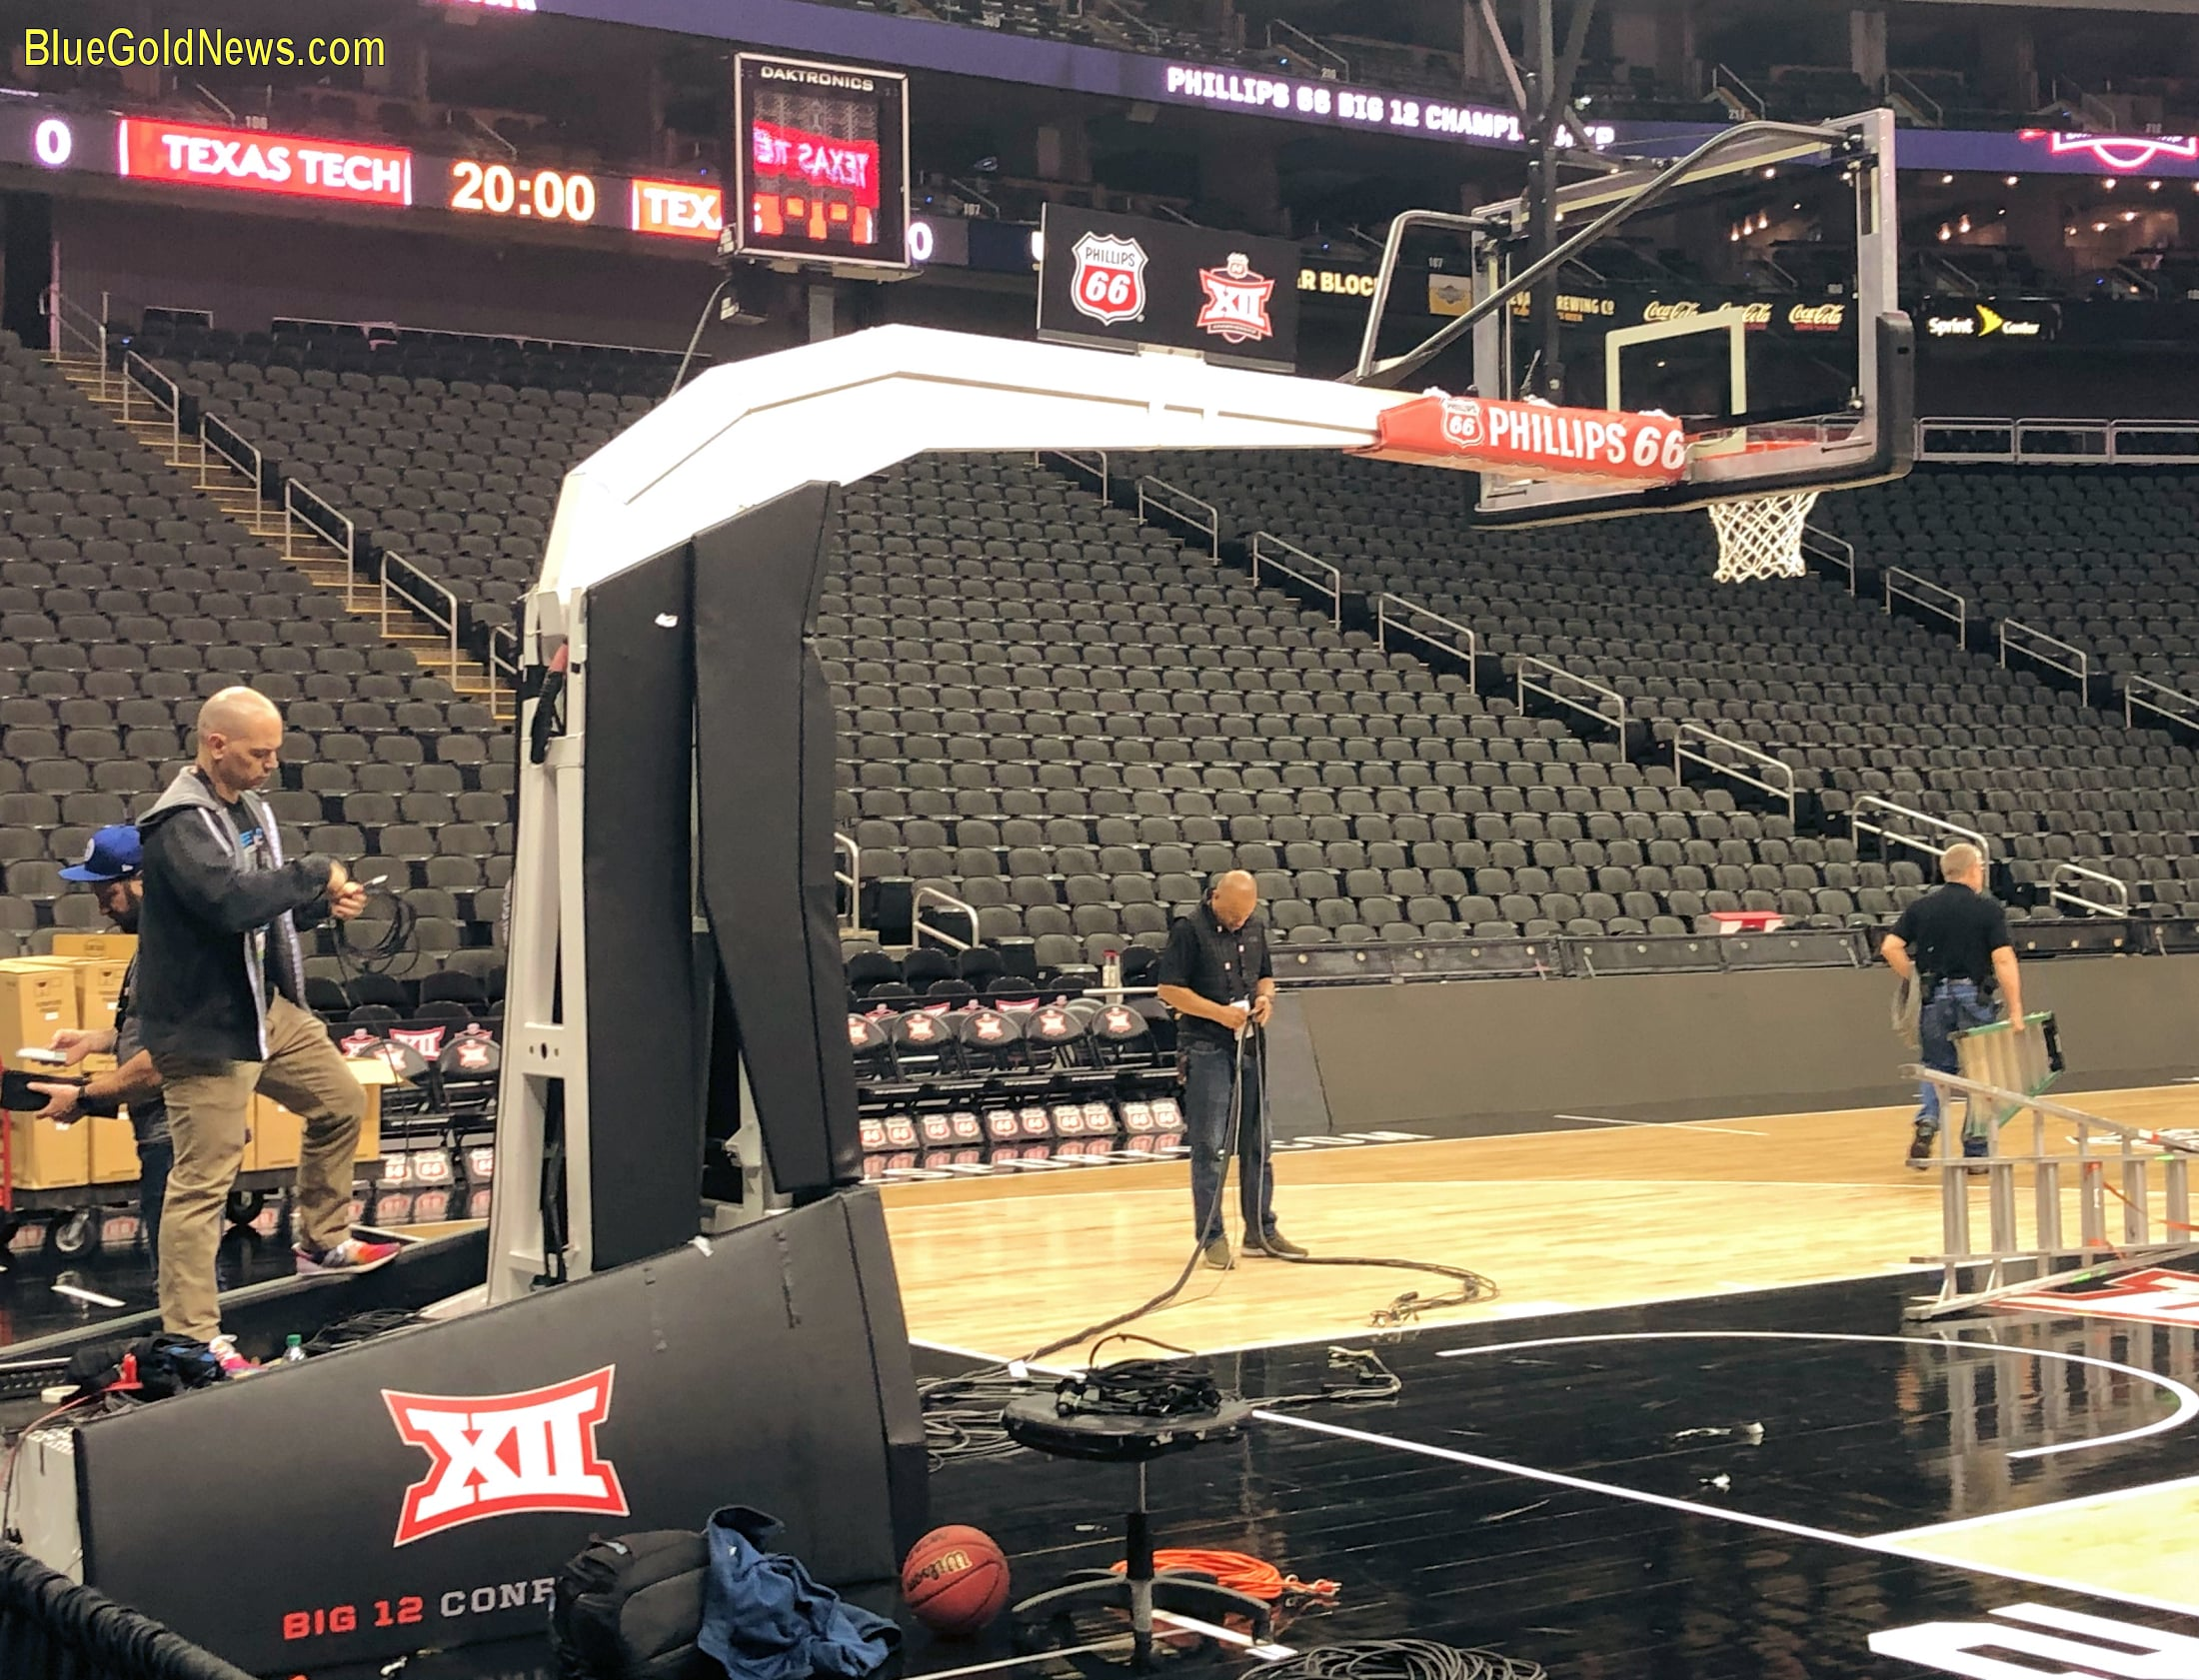 Workers begin the teardown process after the cancellation of the Big 12 Men's Basketball Championship